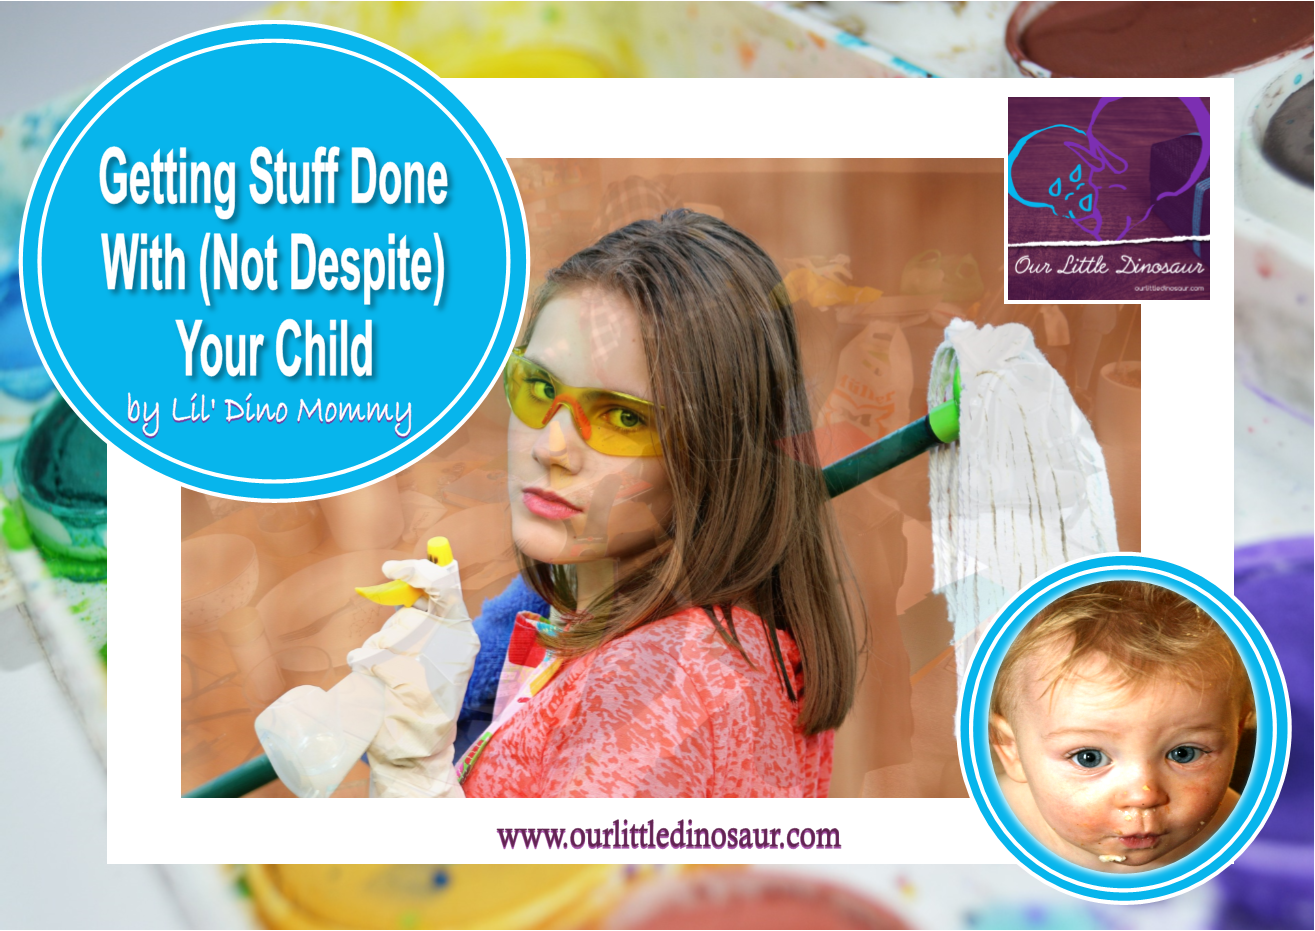 Getting Stuff Done With (Not Despite) Your Child